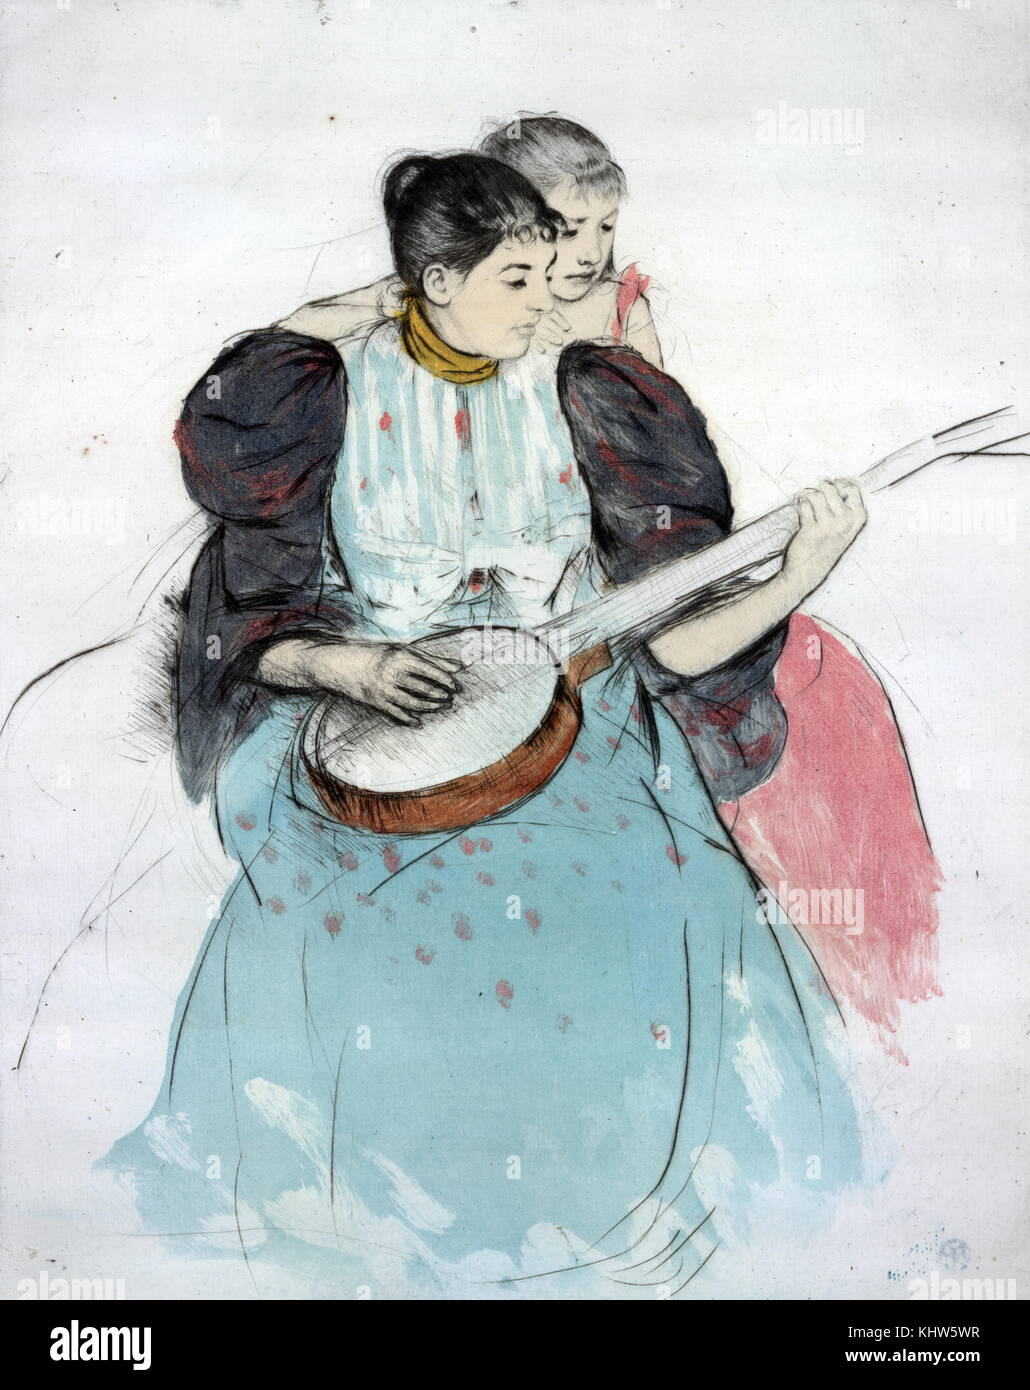 """Painting titled """"The Banjo Lesson"""" by Mary Cassatt. Mary Cassatt (1844-1926) an American painter and printmaker. Stock Photo"""